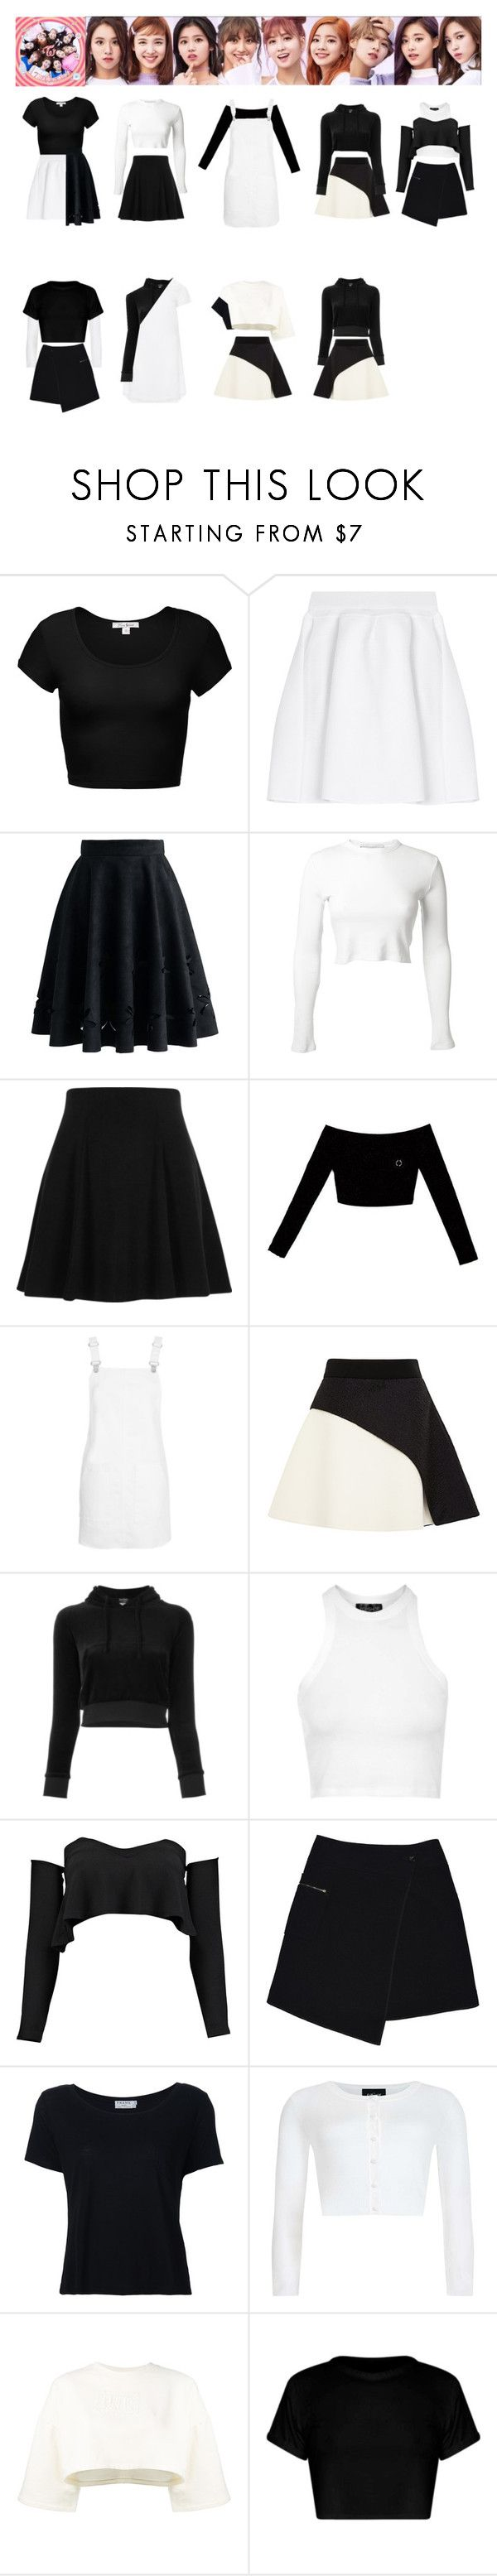 """""""Twice – TT"""" by lily25457 on Polyvore featuring beauty, malo, Chicwish, Rosetta Getty, River Island, Topshop, FAUSTO PUGLISI, Vetements, Boohoo and MARC CAIN"""